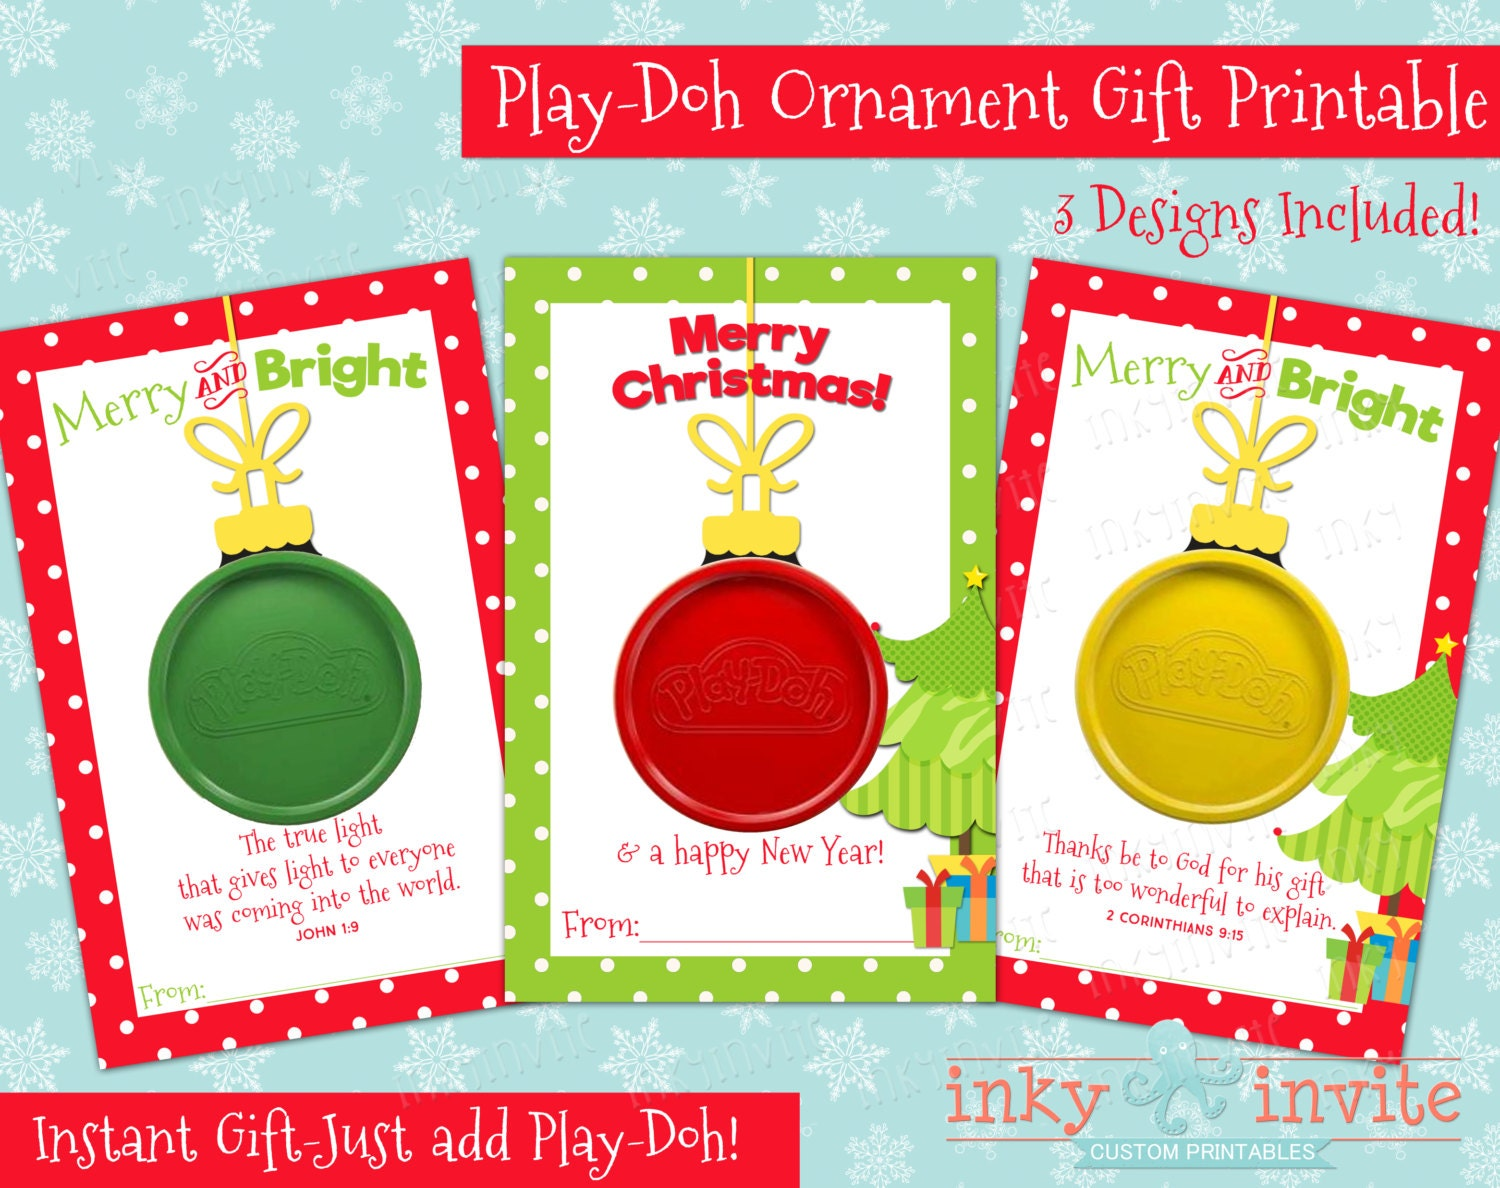 PlayDoh Ornament Gift Card Class Christmas Gifts Small